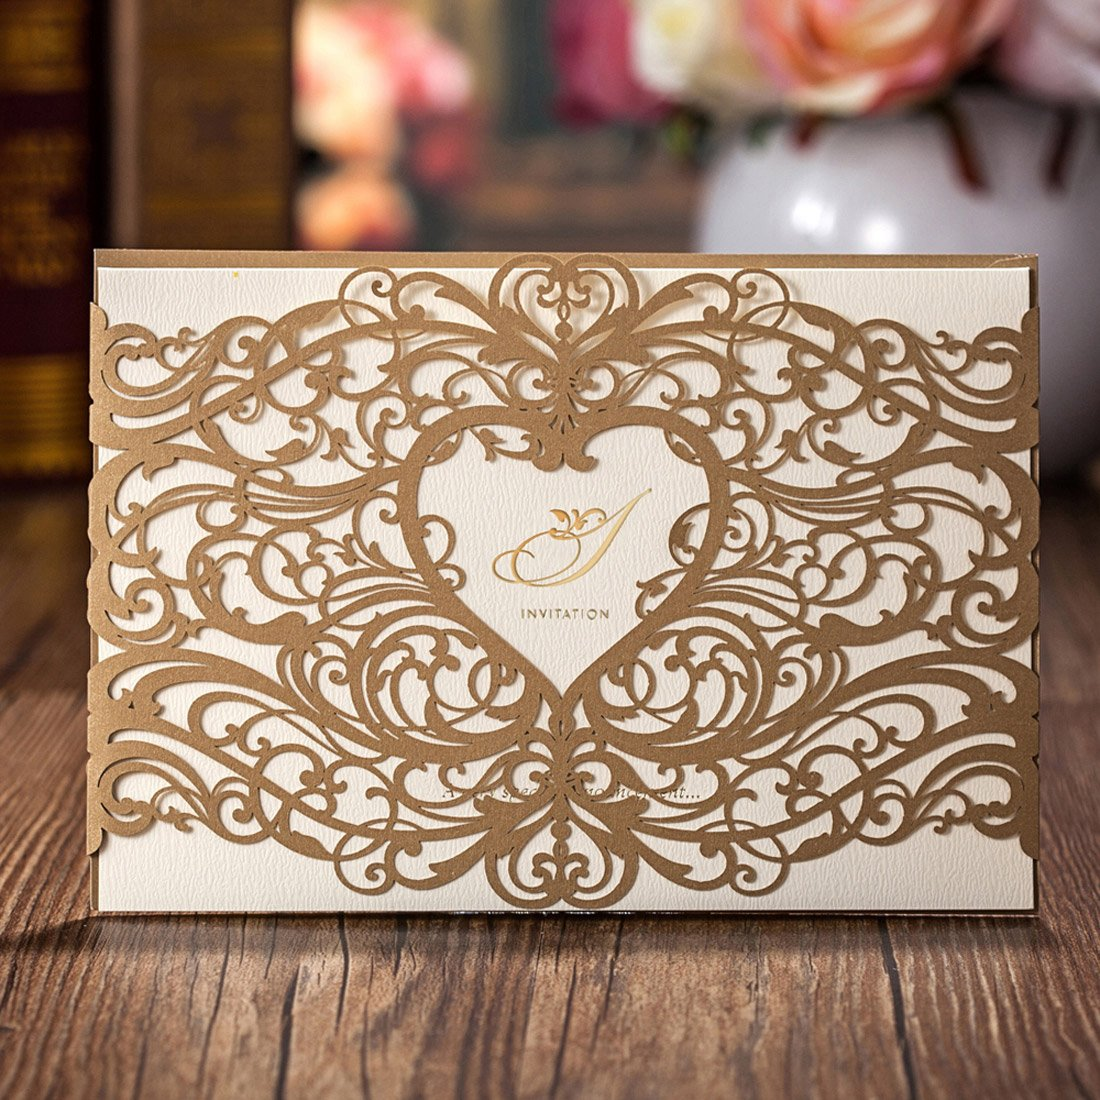 Wishmade 50 Pieces Elegant Heart Gold Laser Cut Wedding Invitations Cardstock With Lace Hollow floral for Birthday Baby Shower with Envelopes (pack of 50pcs)